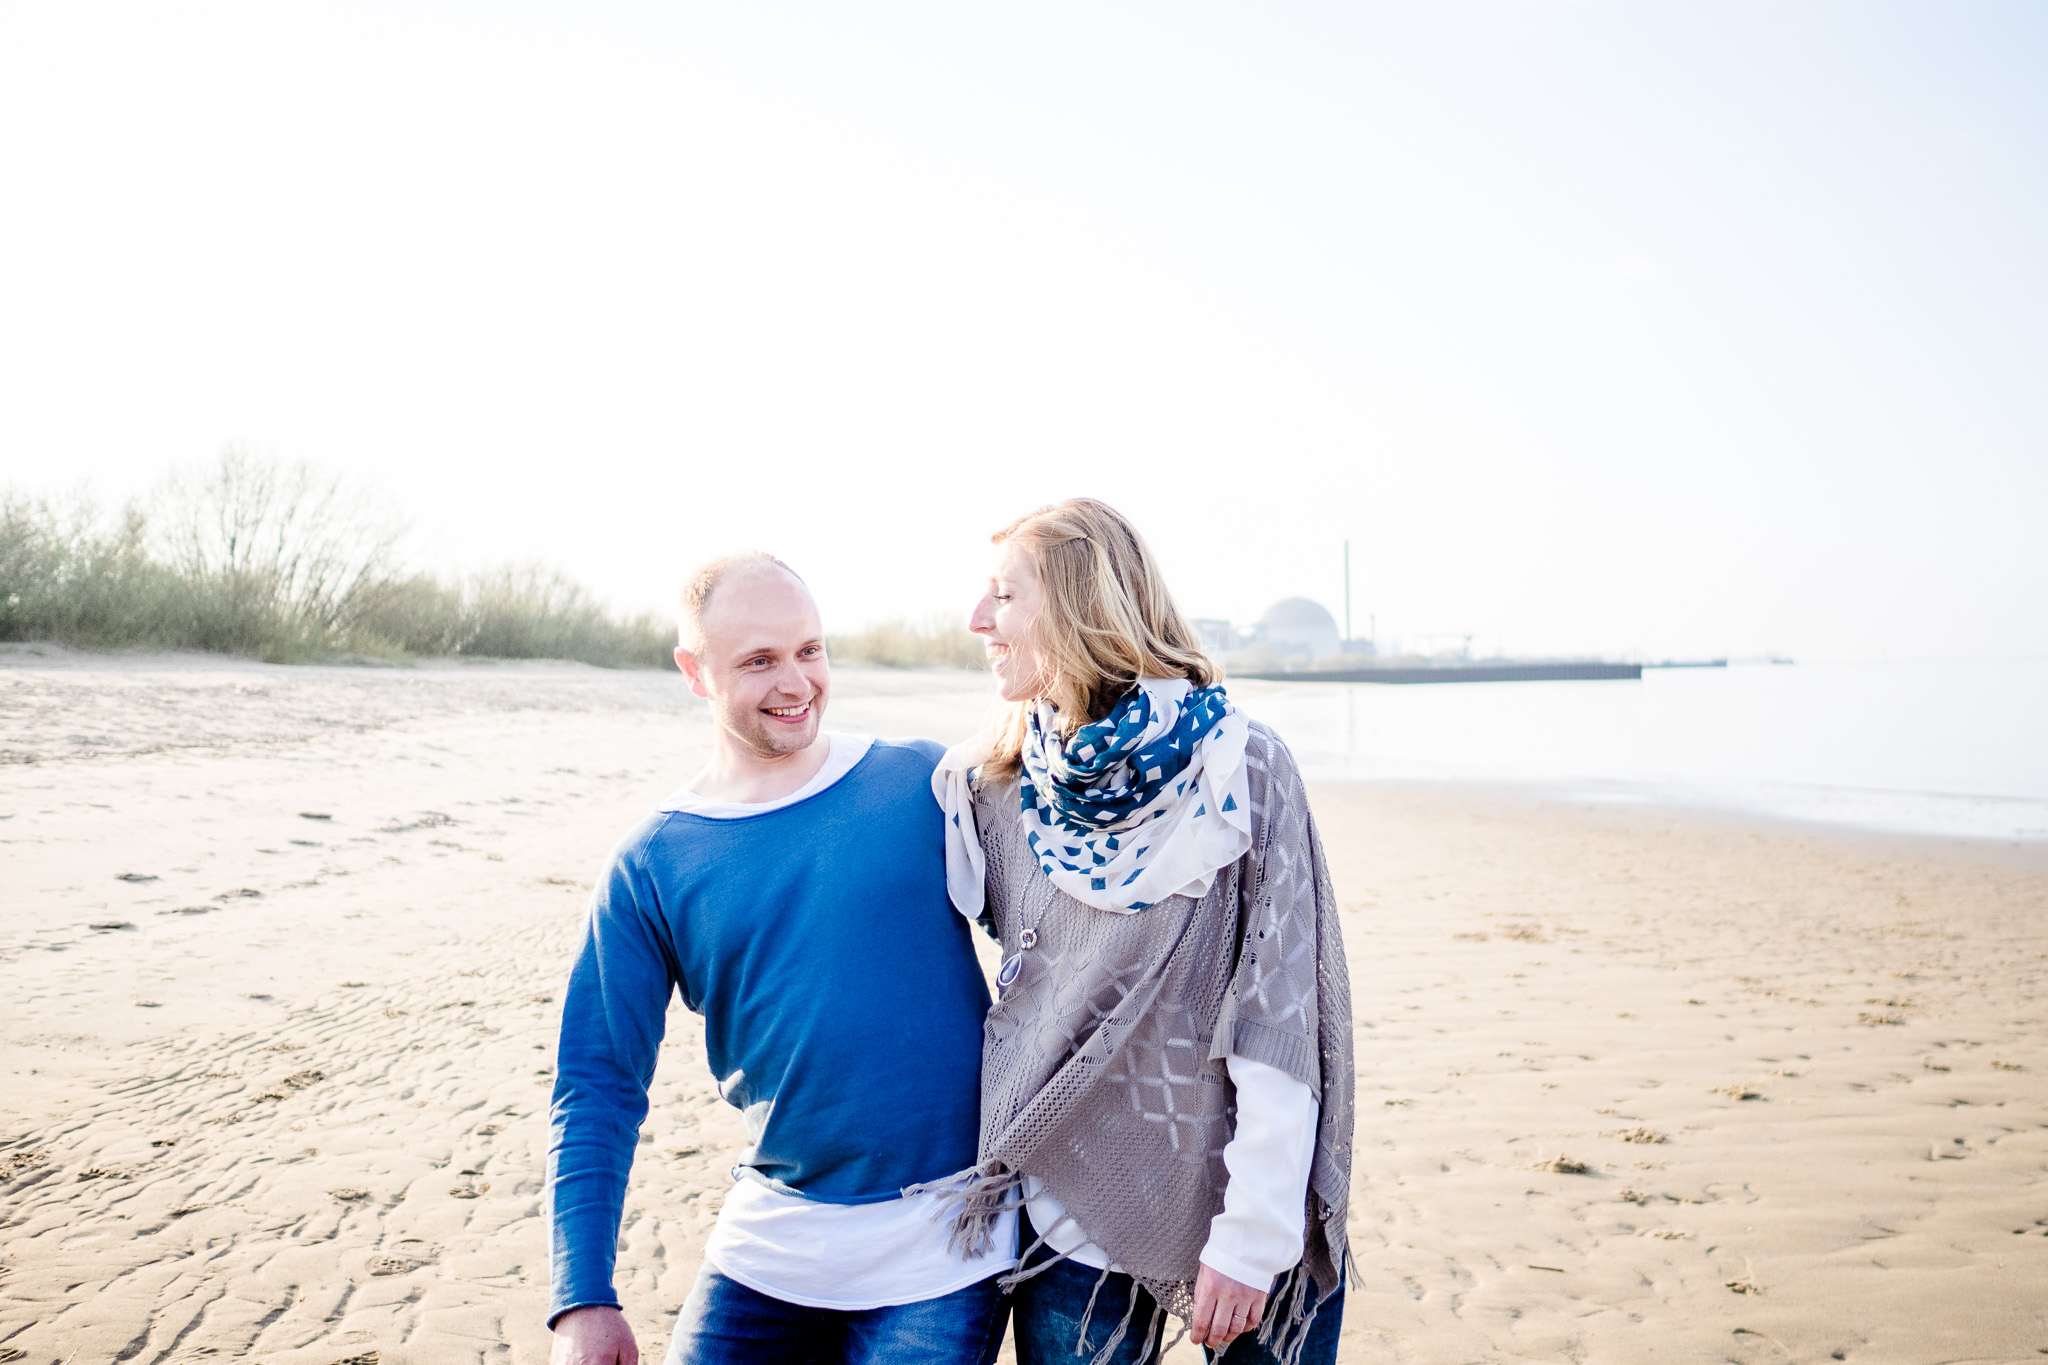 hochzeitsfotograf-wedding-photography-Engagement-stade-elbe007